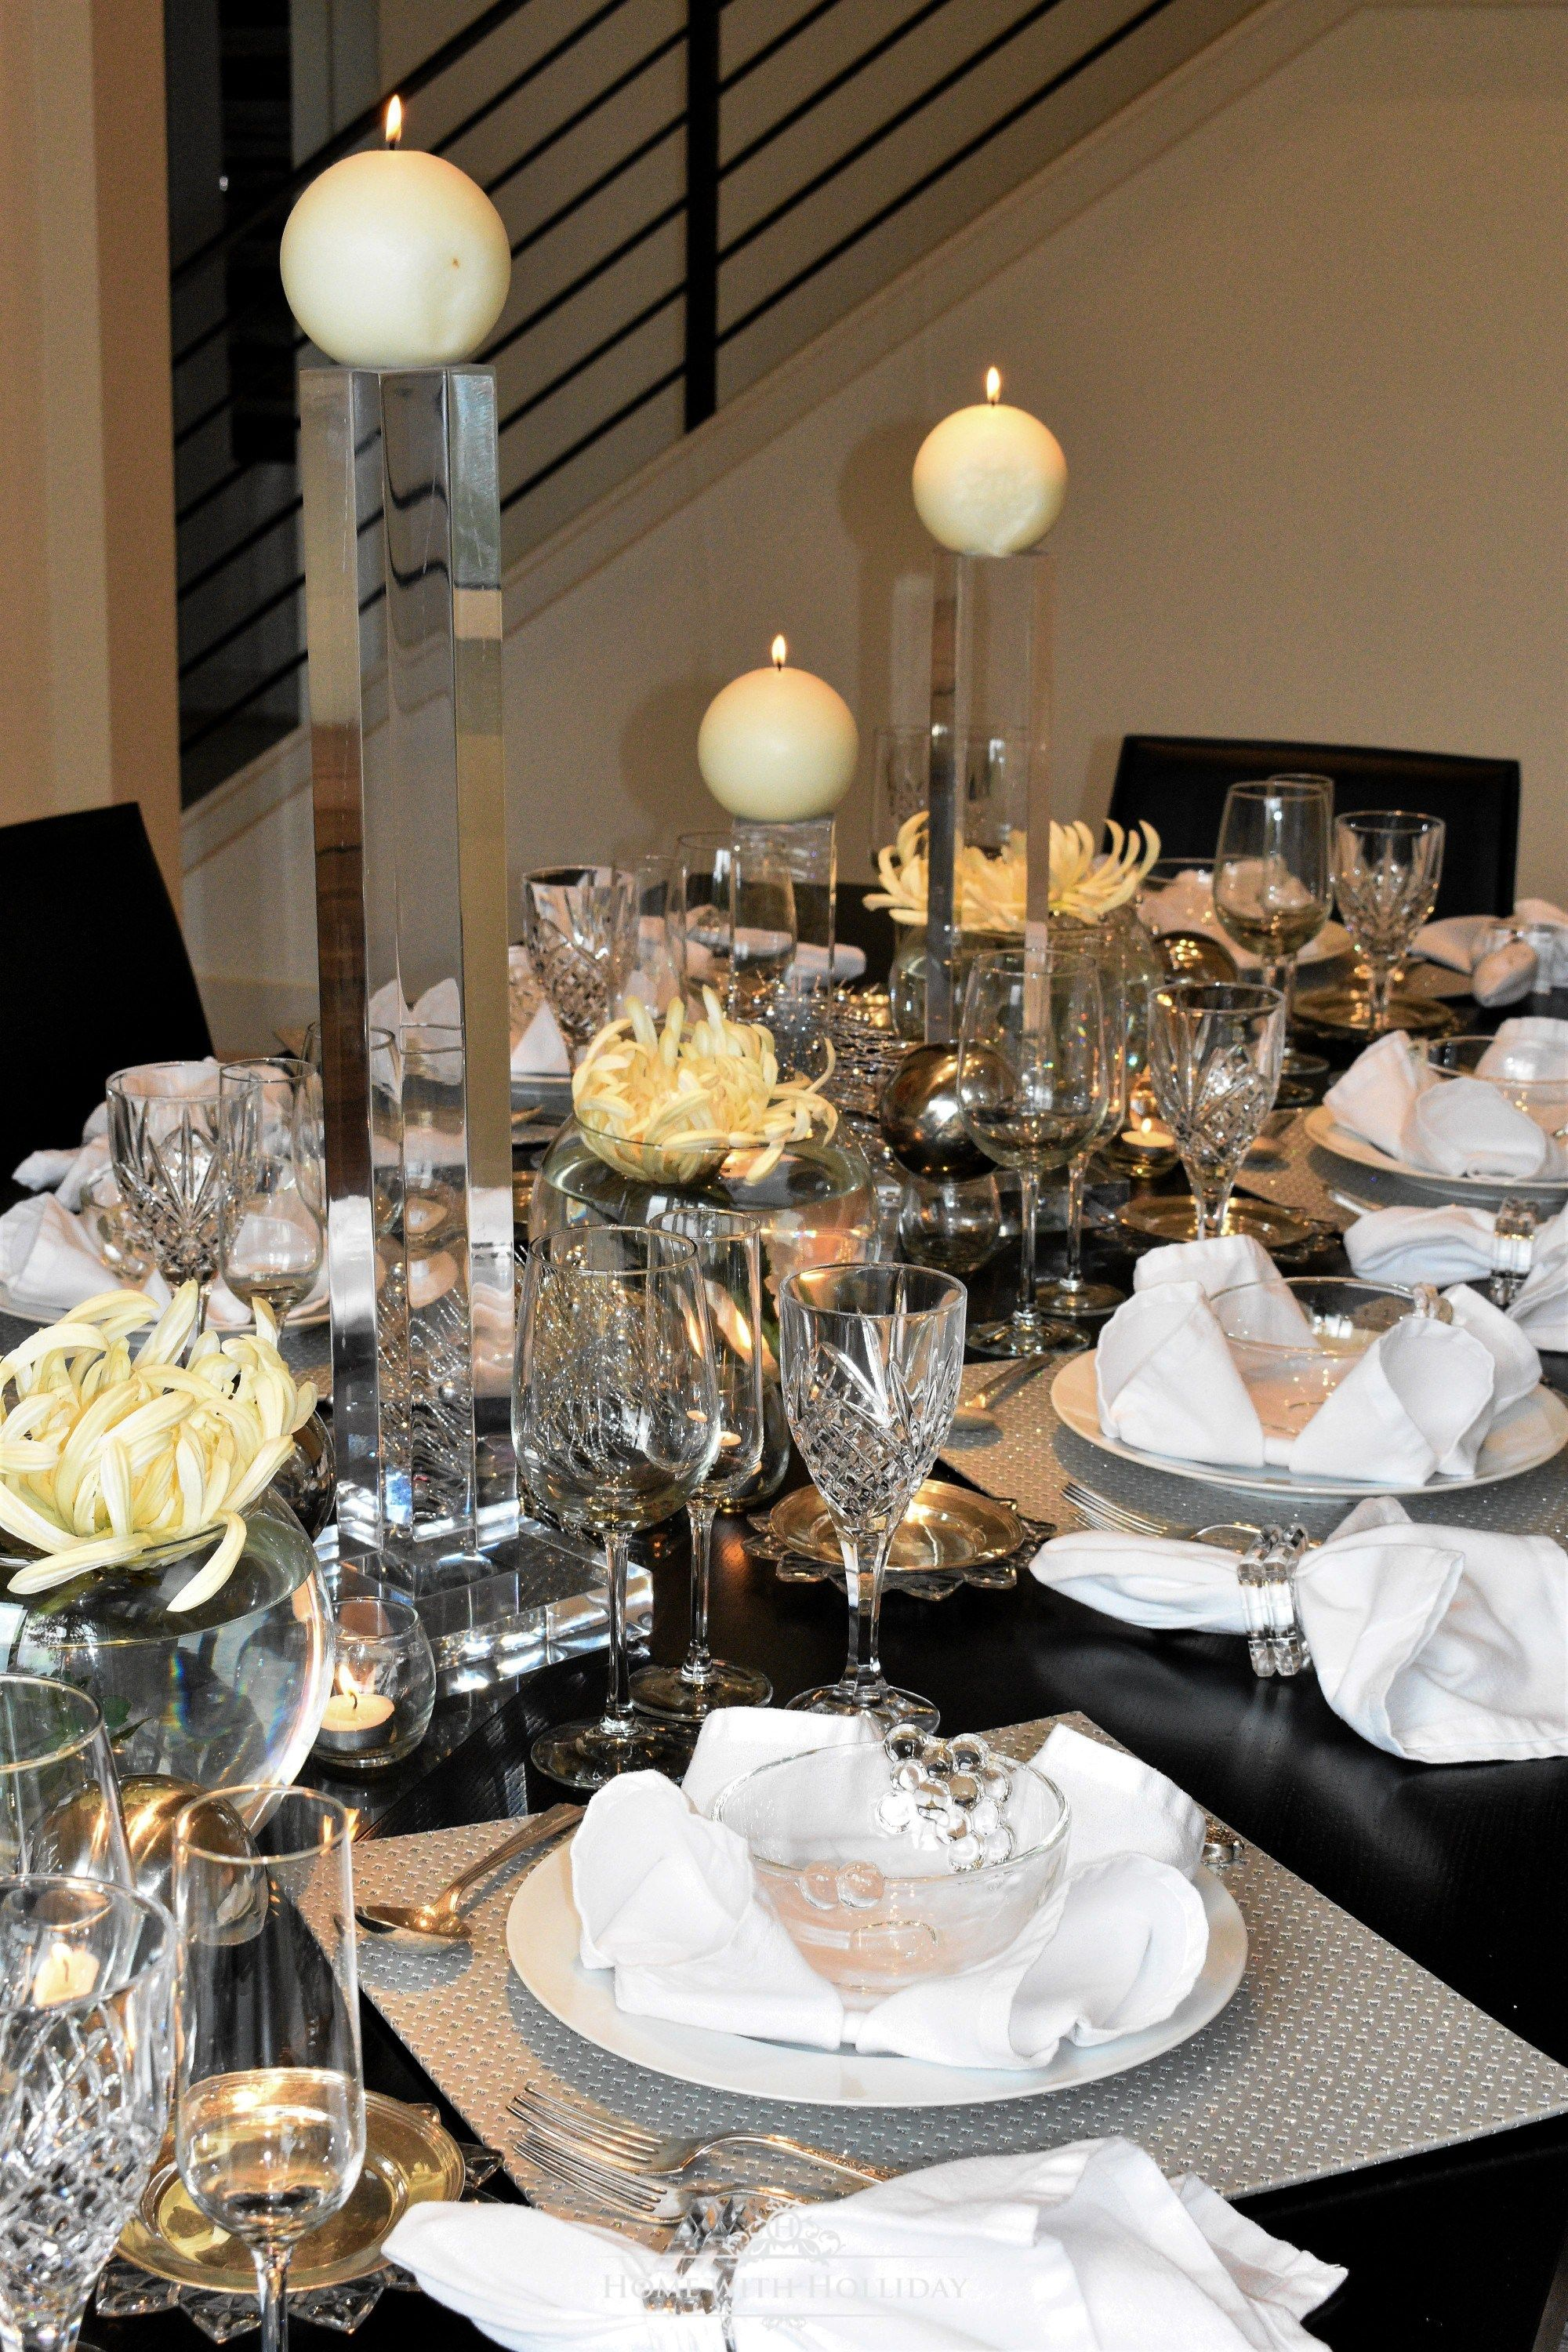 Silver and White New Year's Eve Table Setting Table